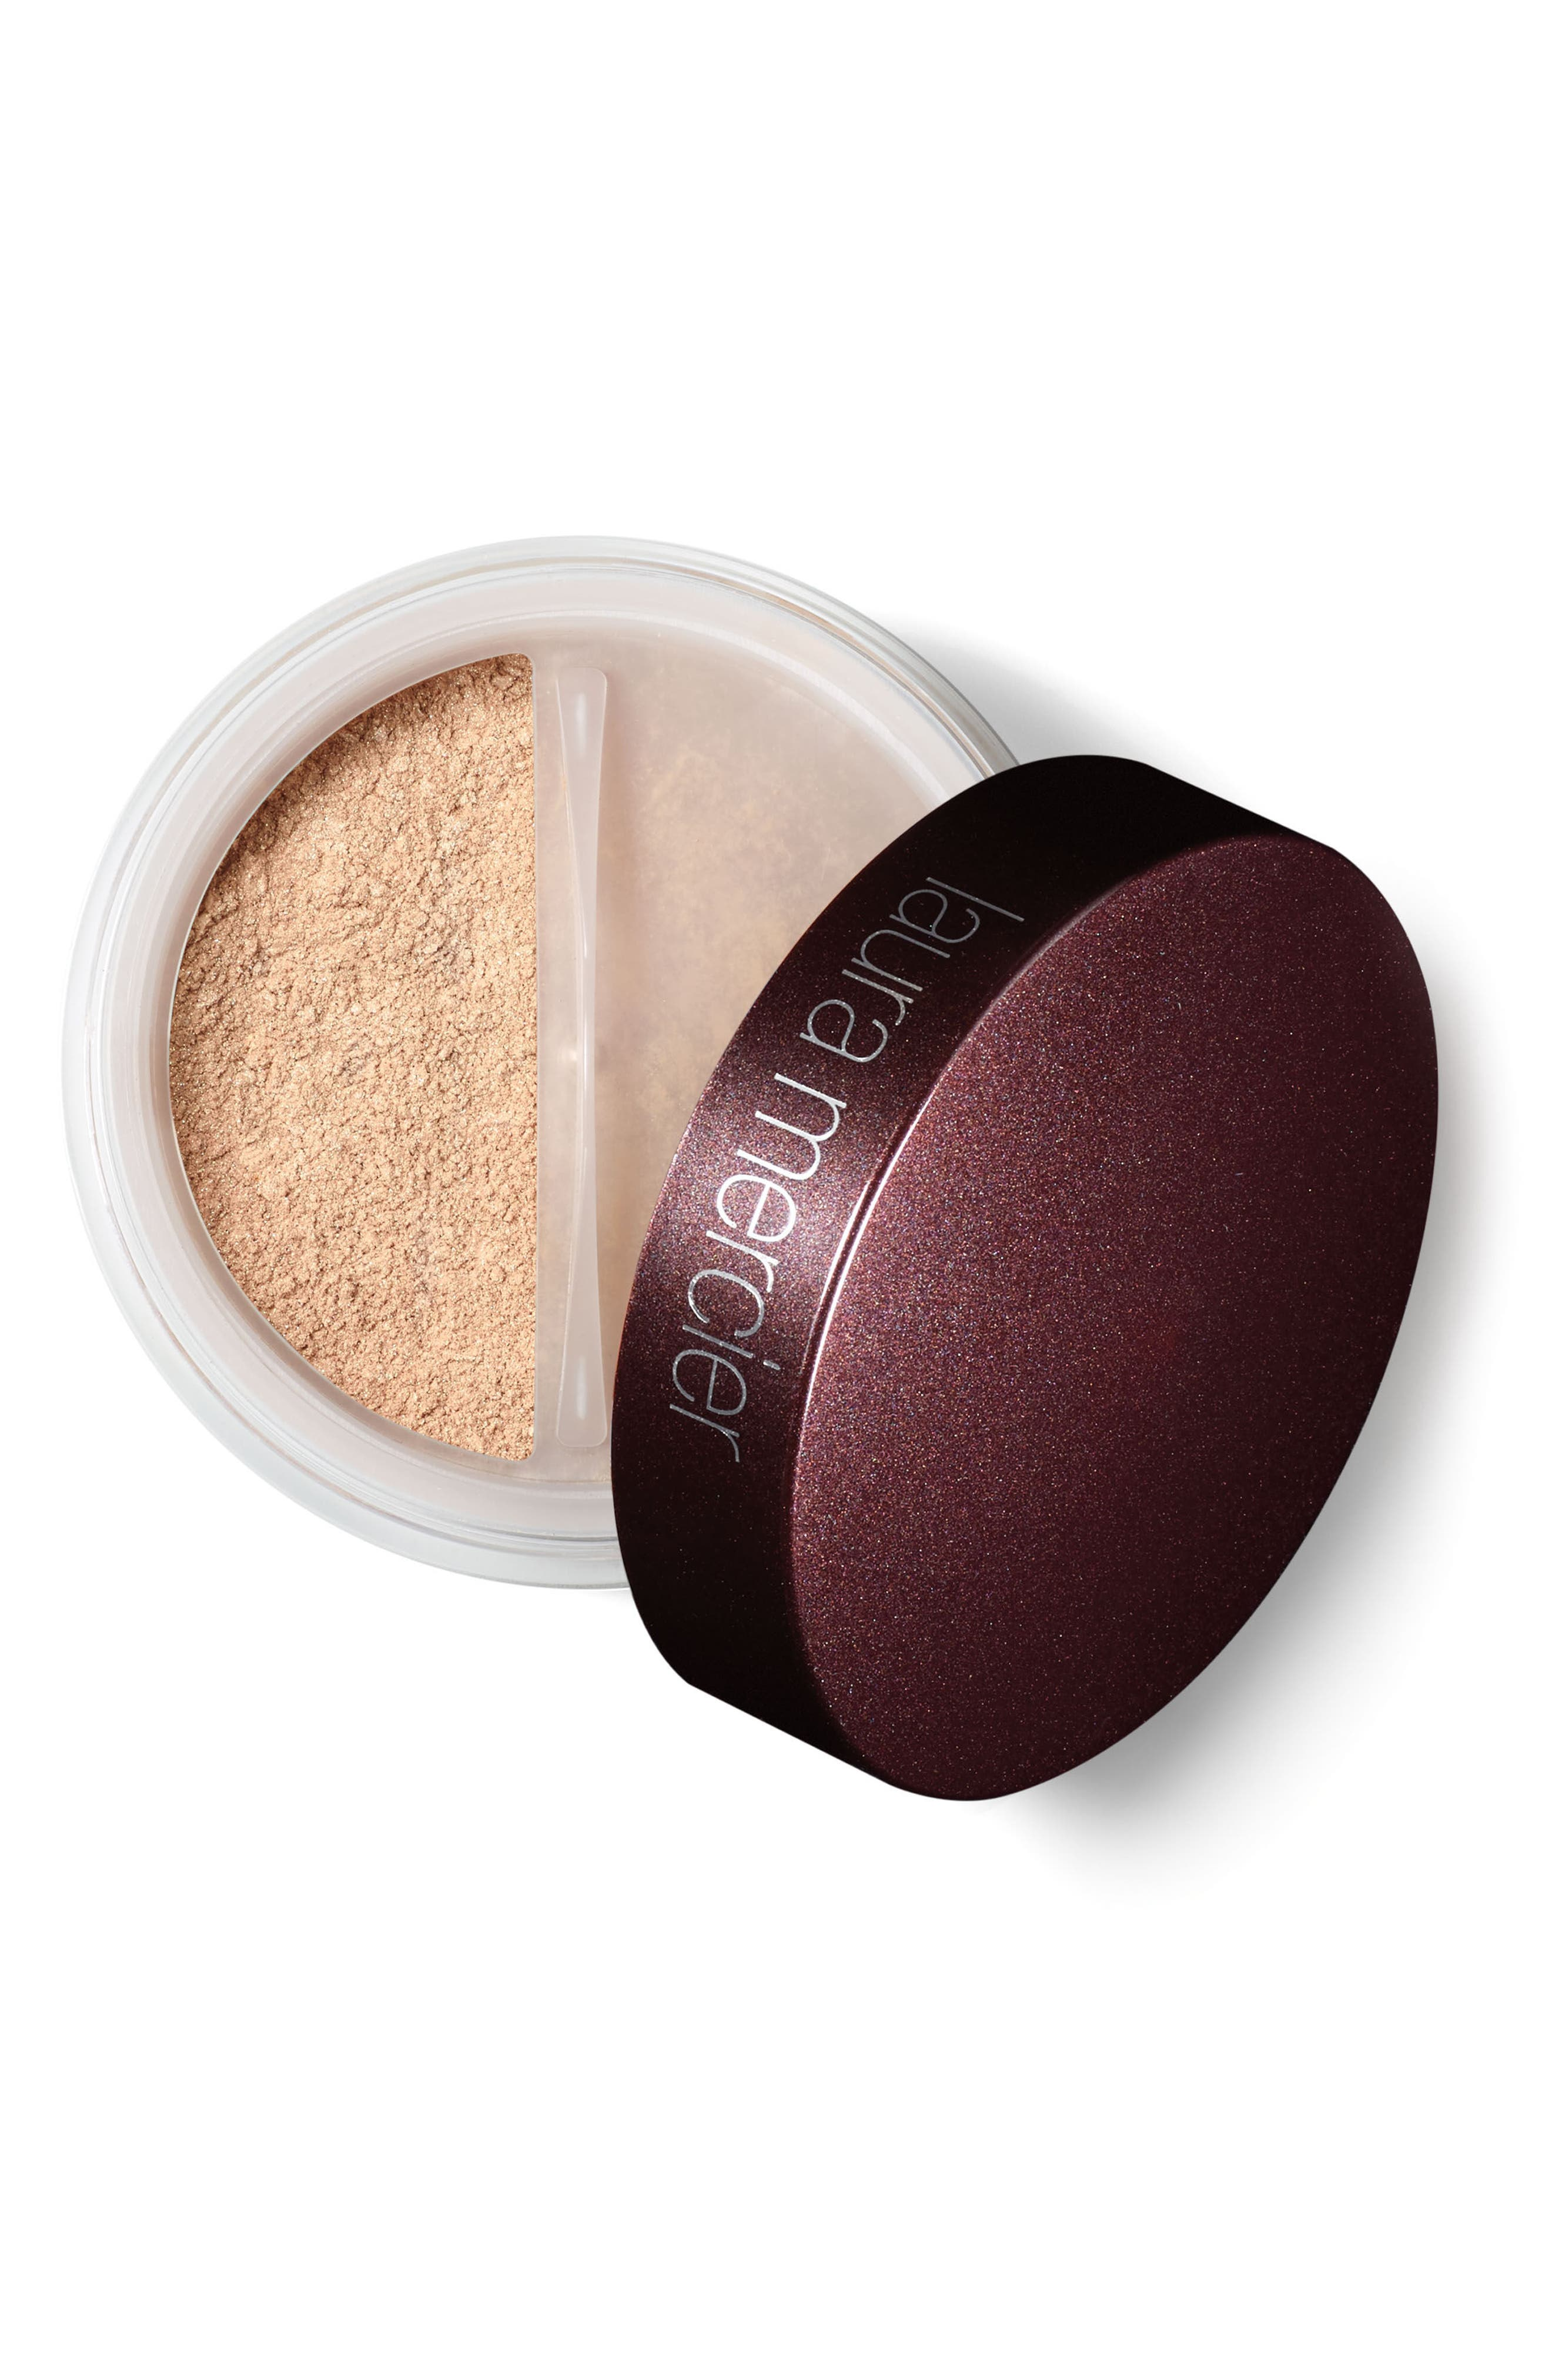 Laura Mercier Mineral Powder